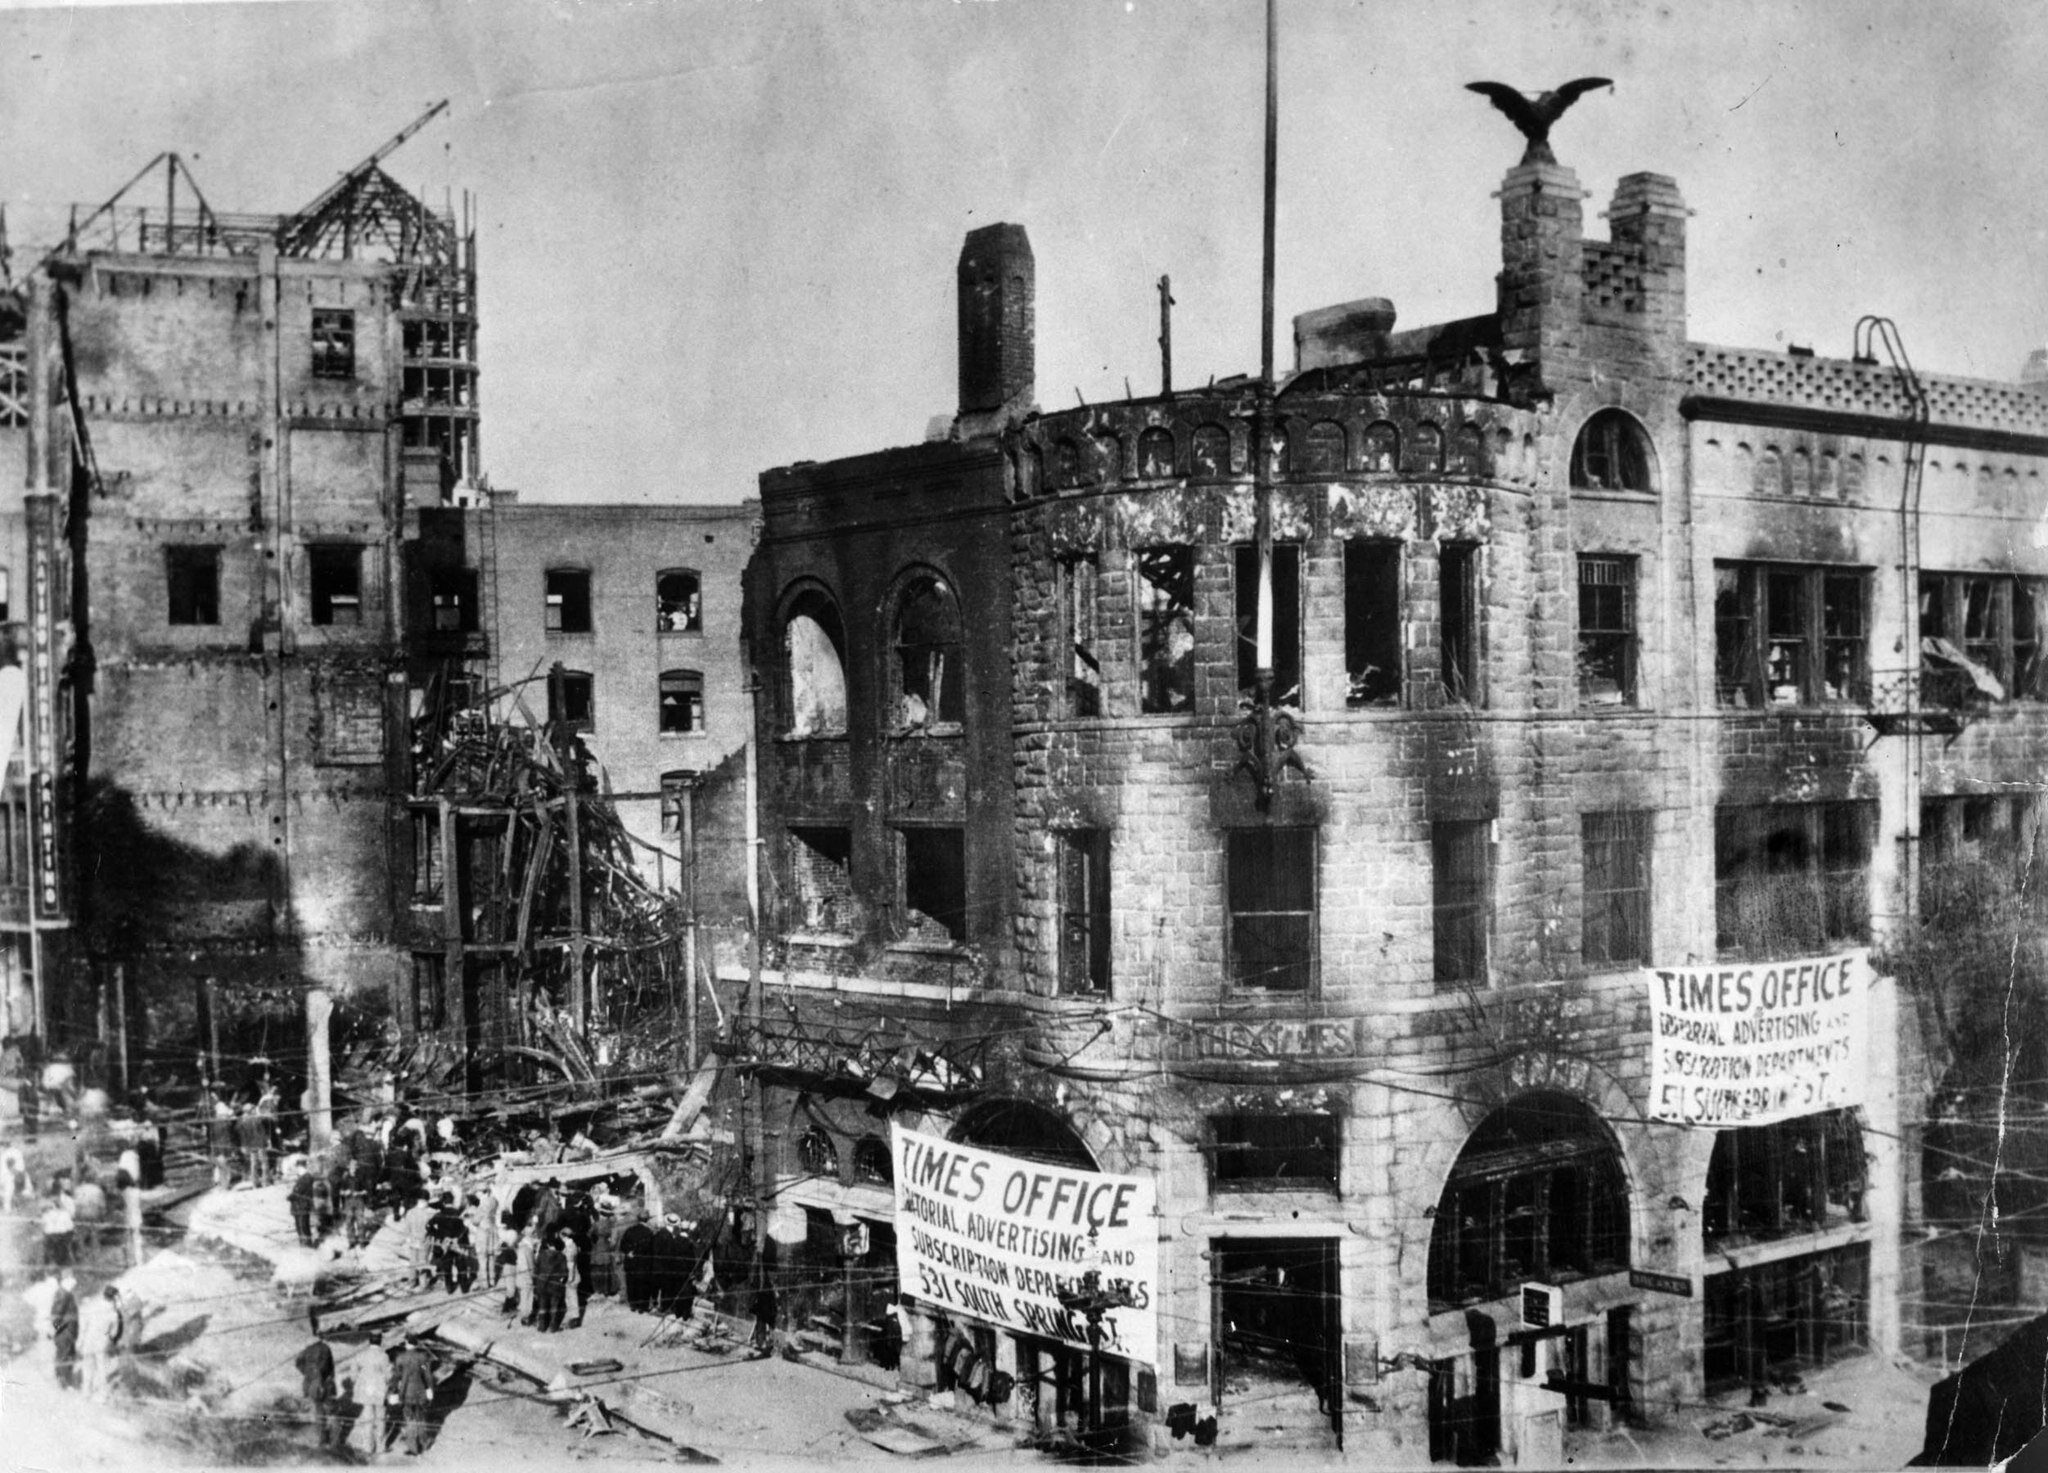 LA Times building in 1910, after bombing